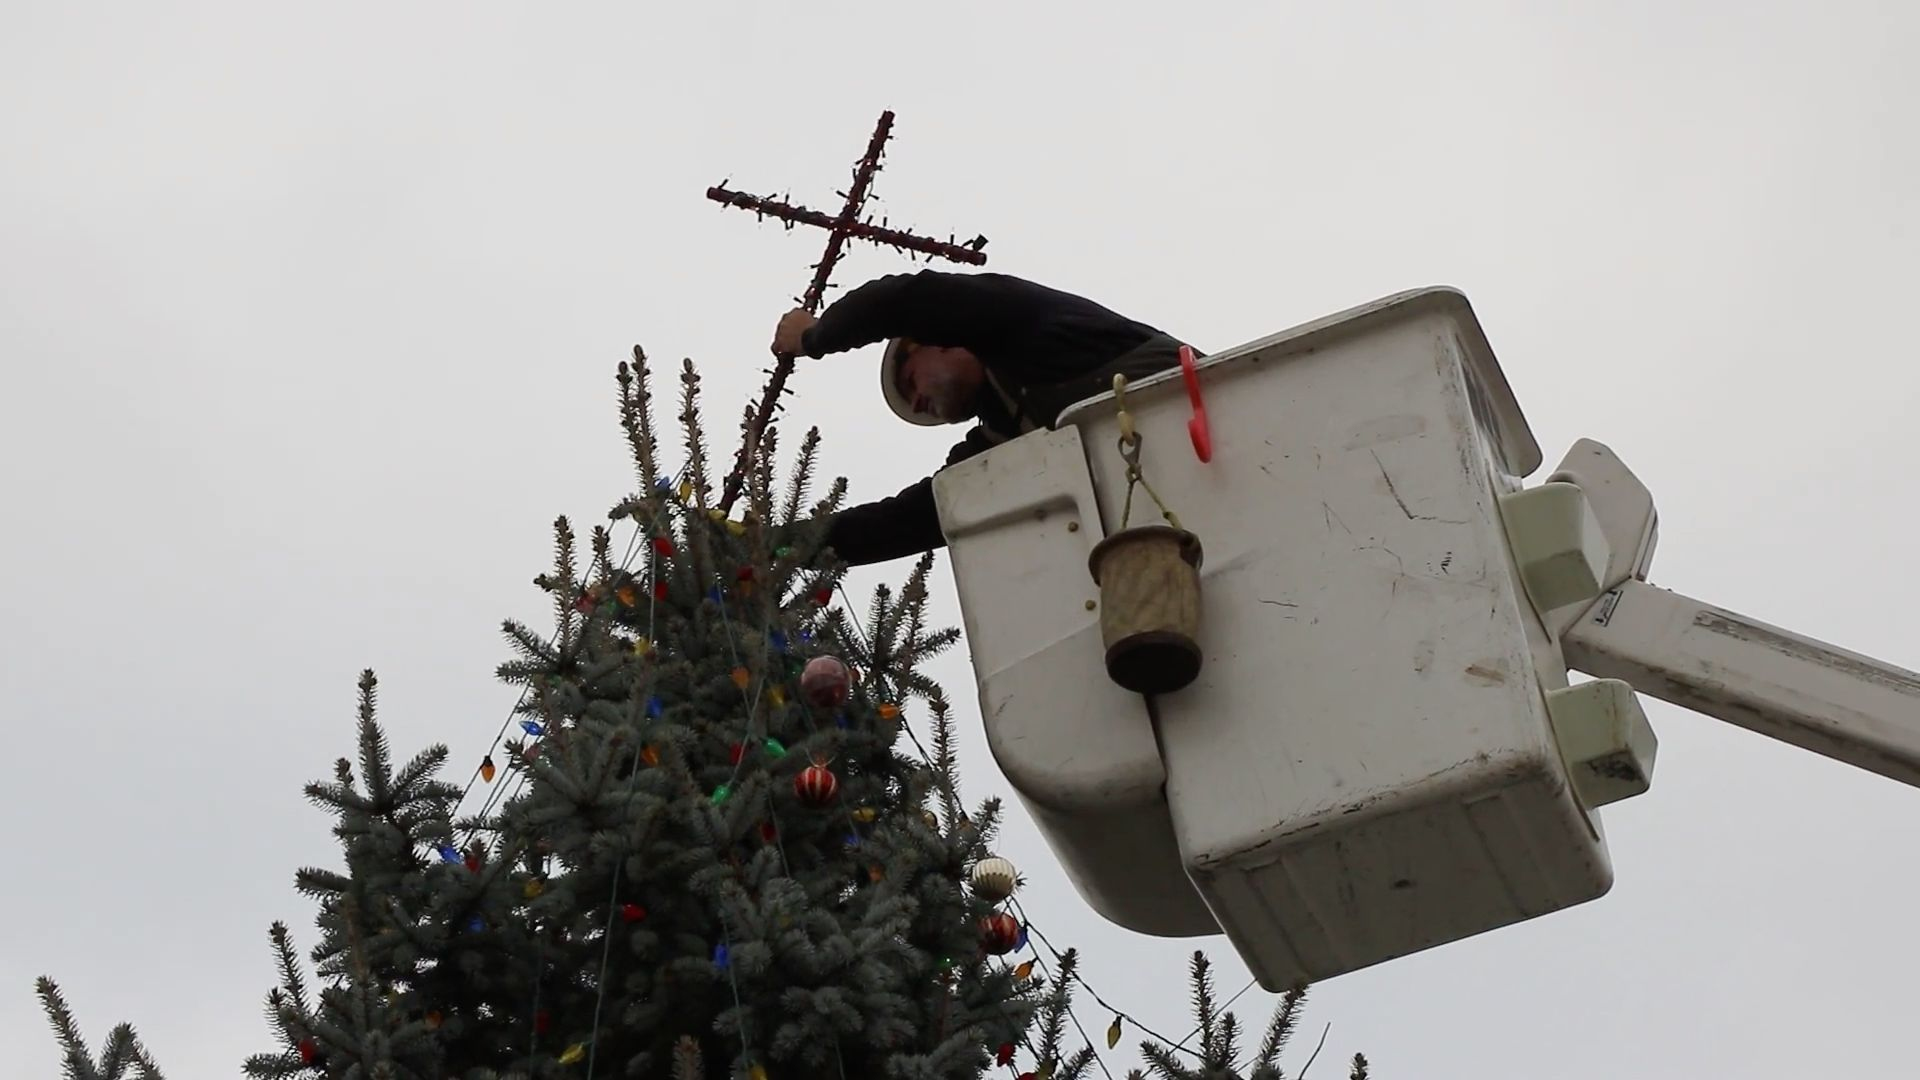 A worker removes a crucifix from the top of a Christmas tree located in an Indiana town square